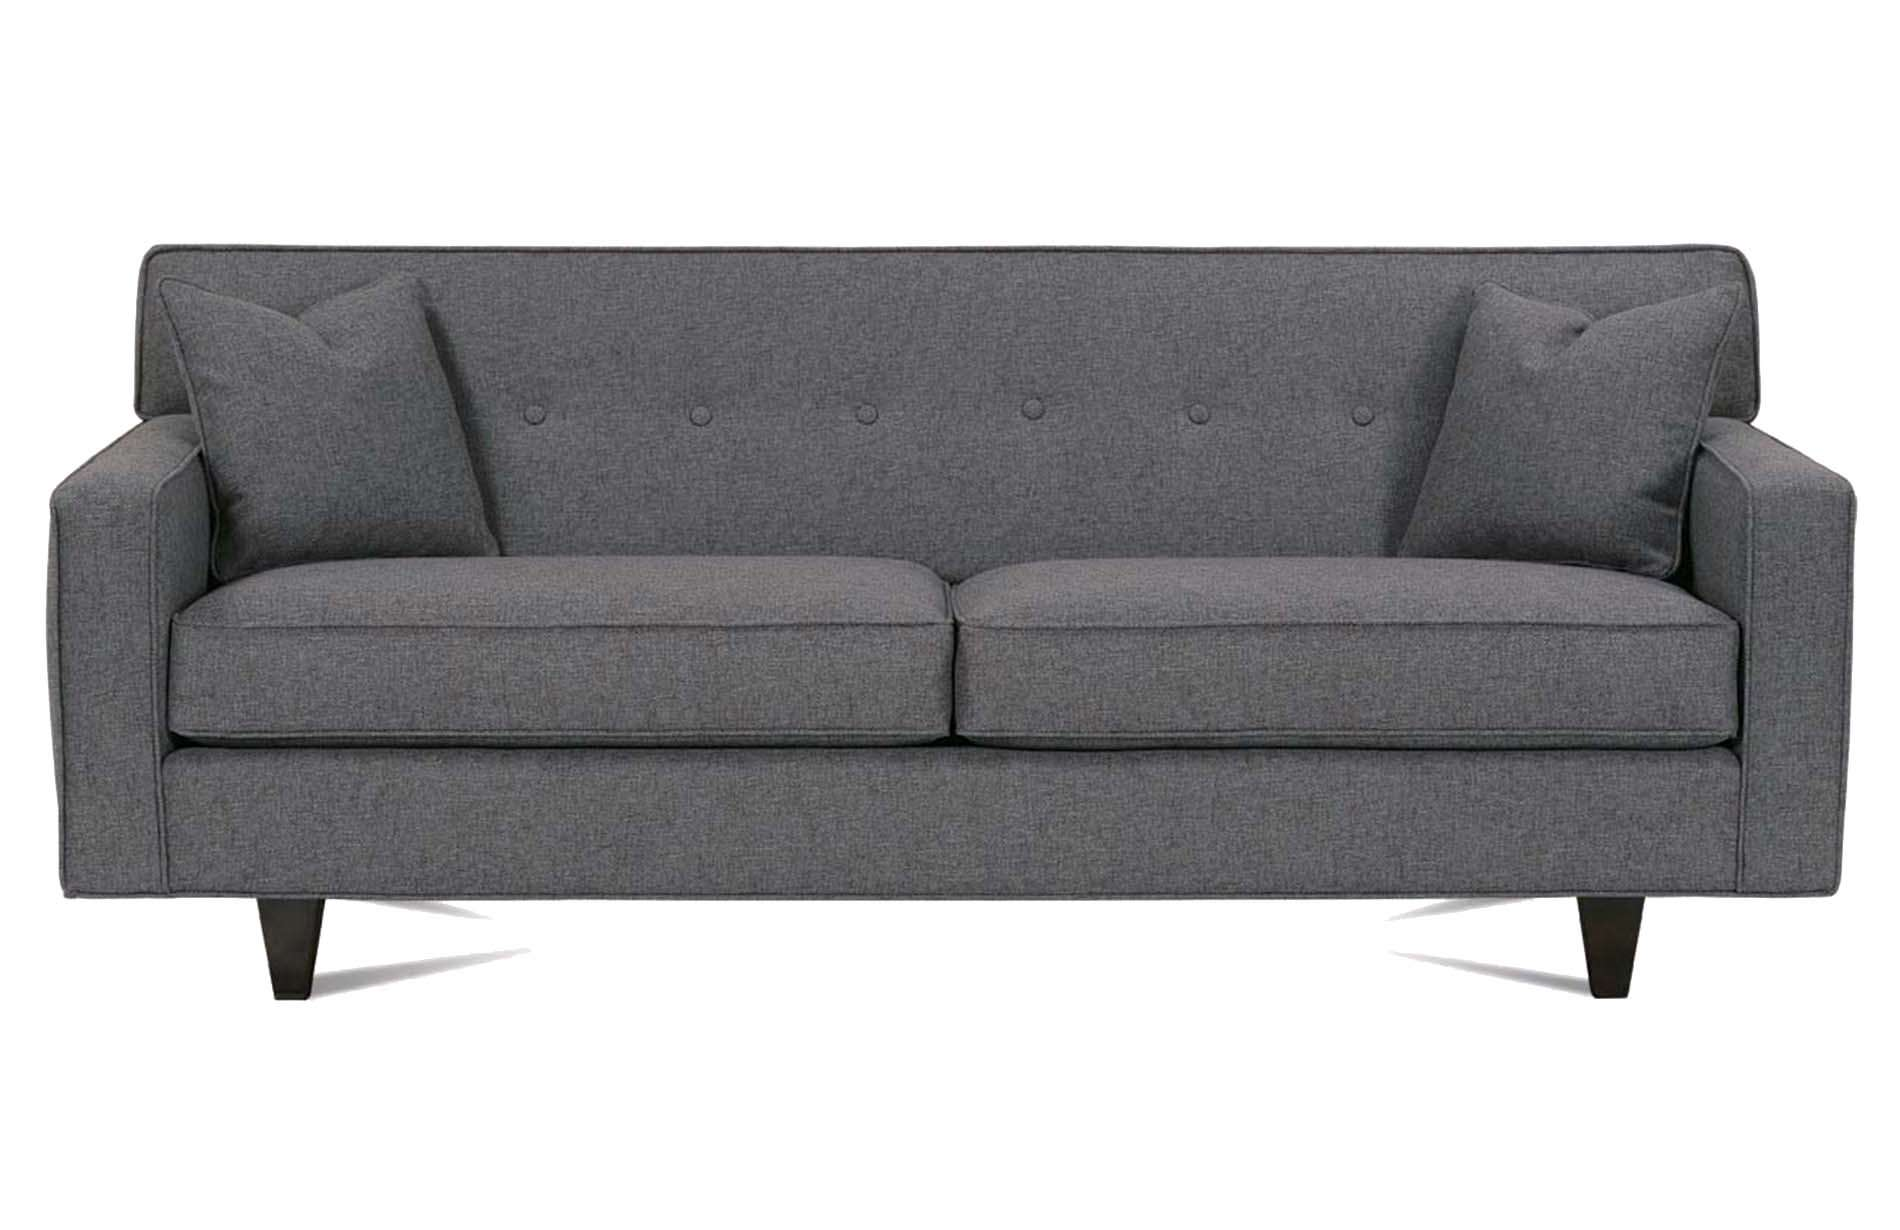 Dorset Sofa, starting at  $1499